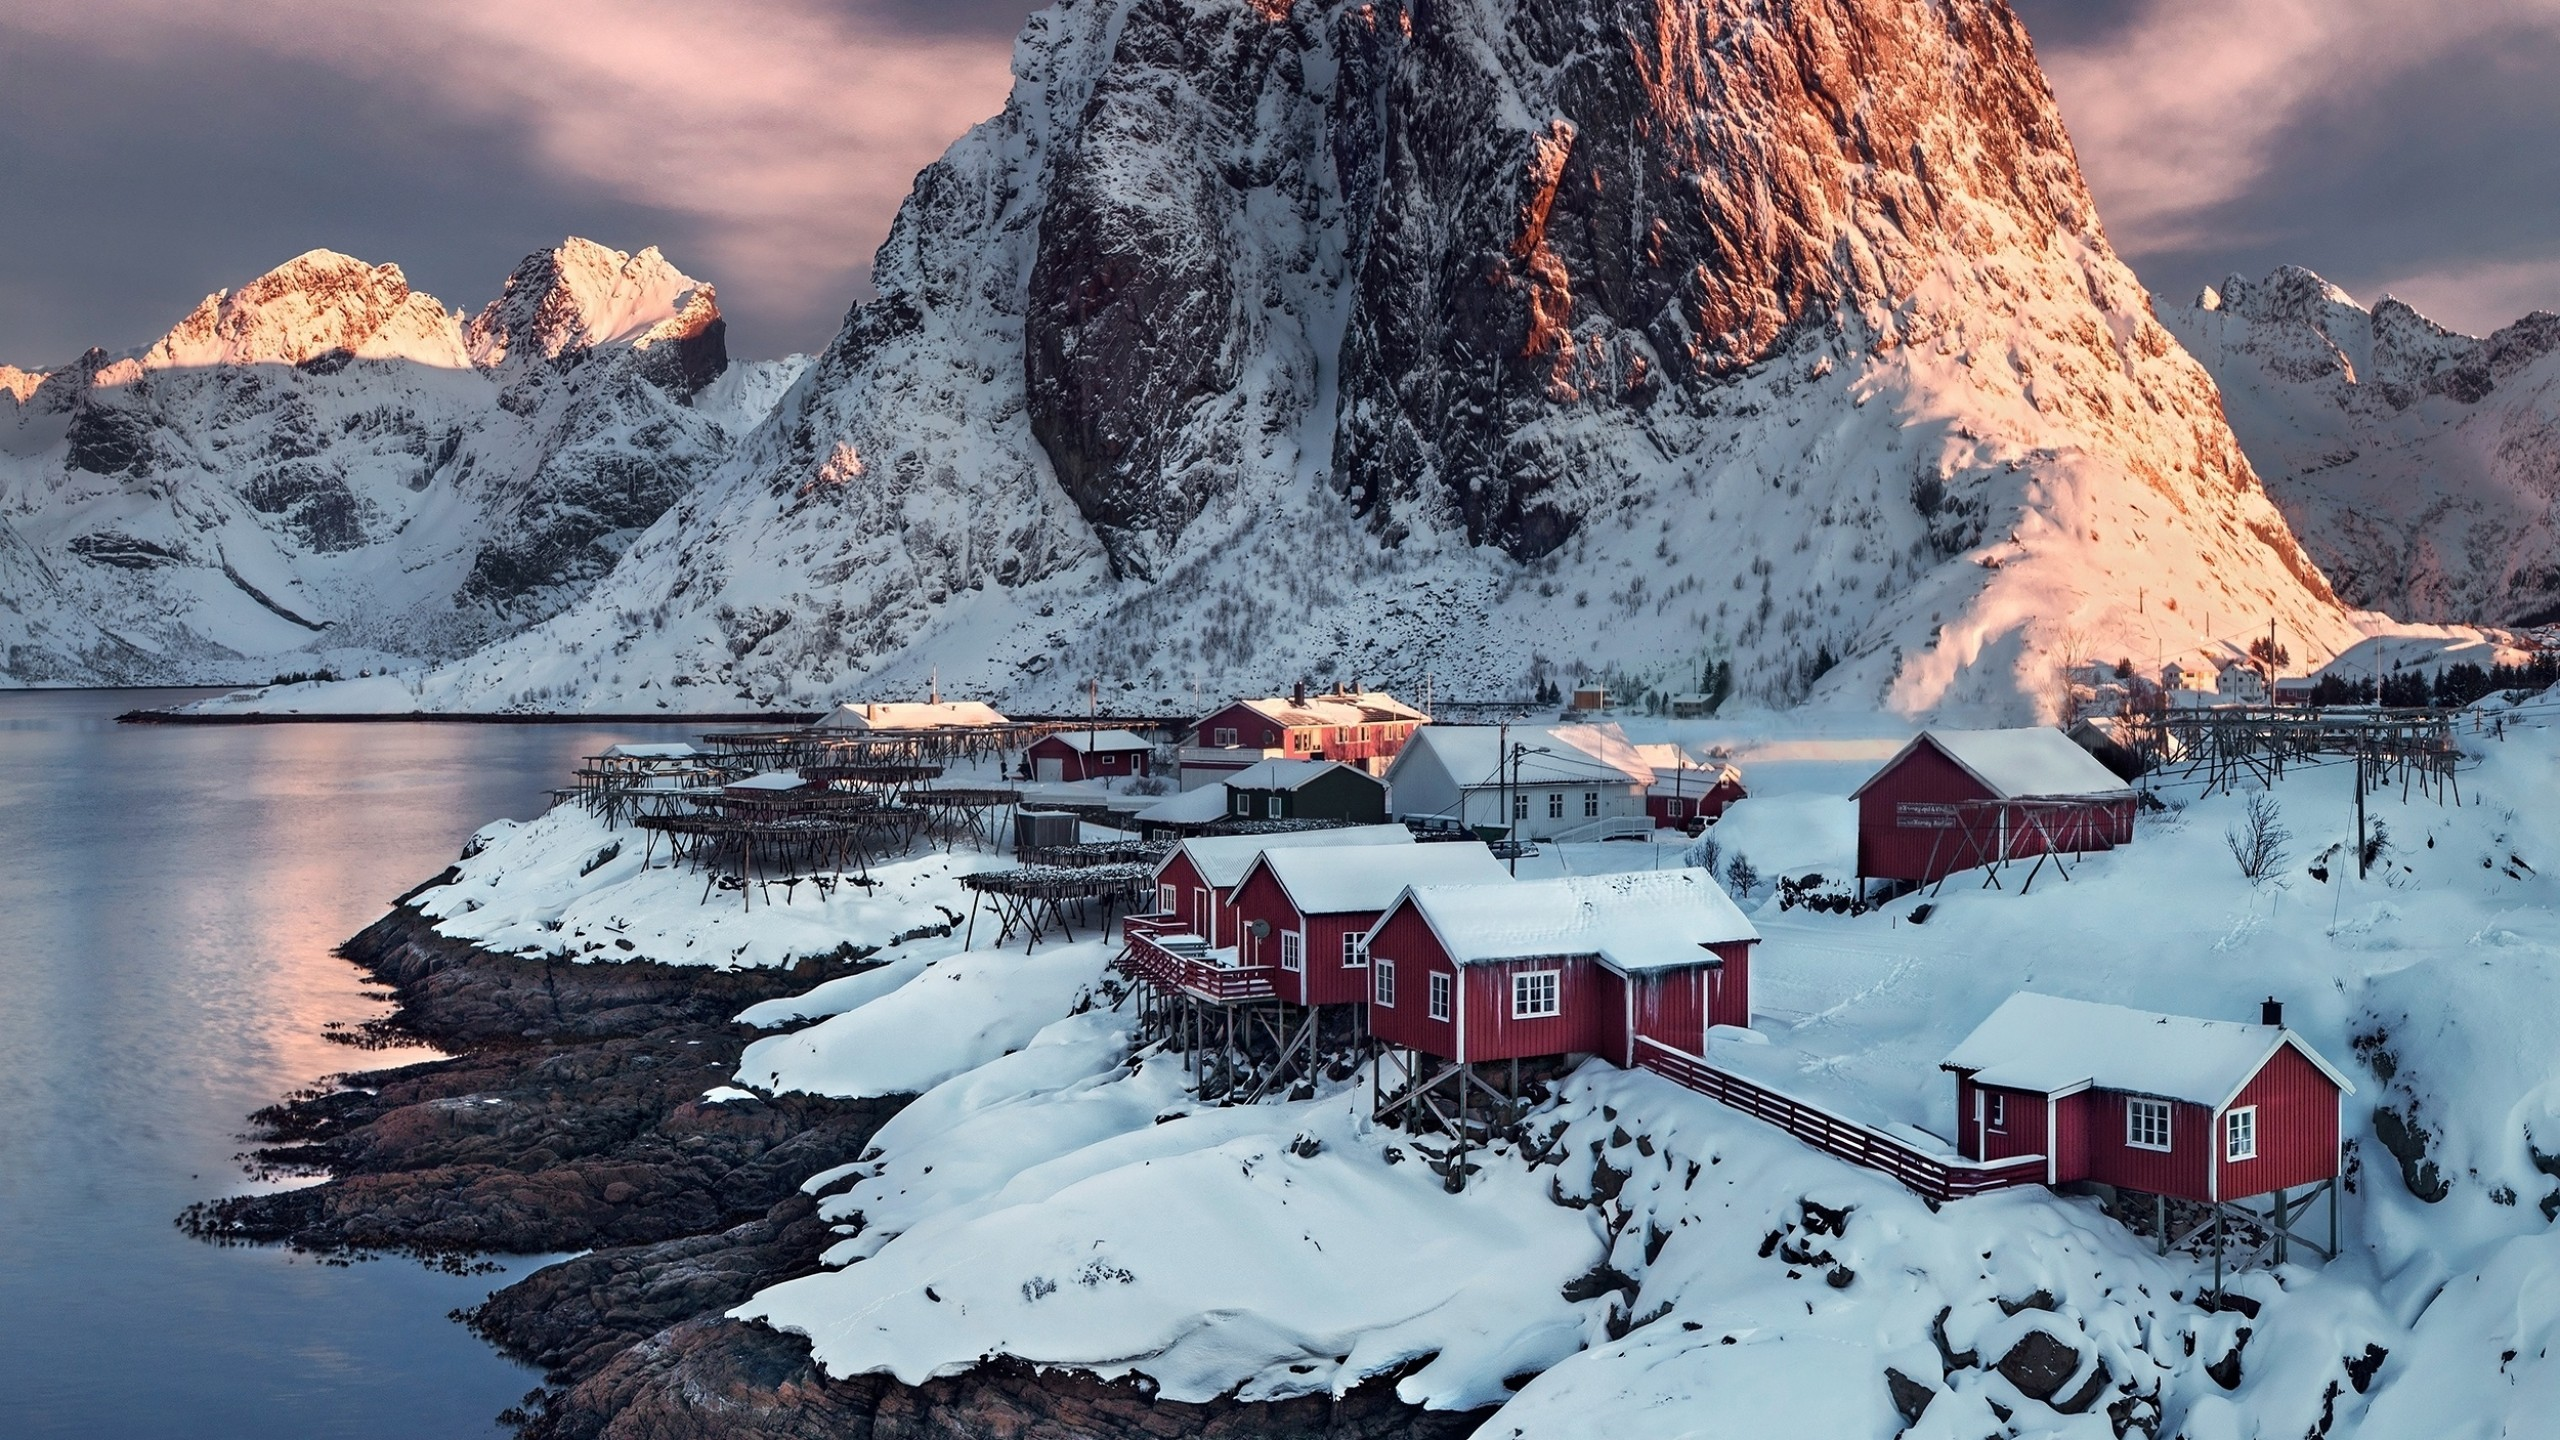 Wallpaper Village in Hamnoy Norway at sunset